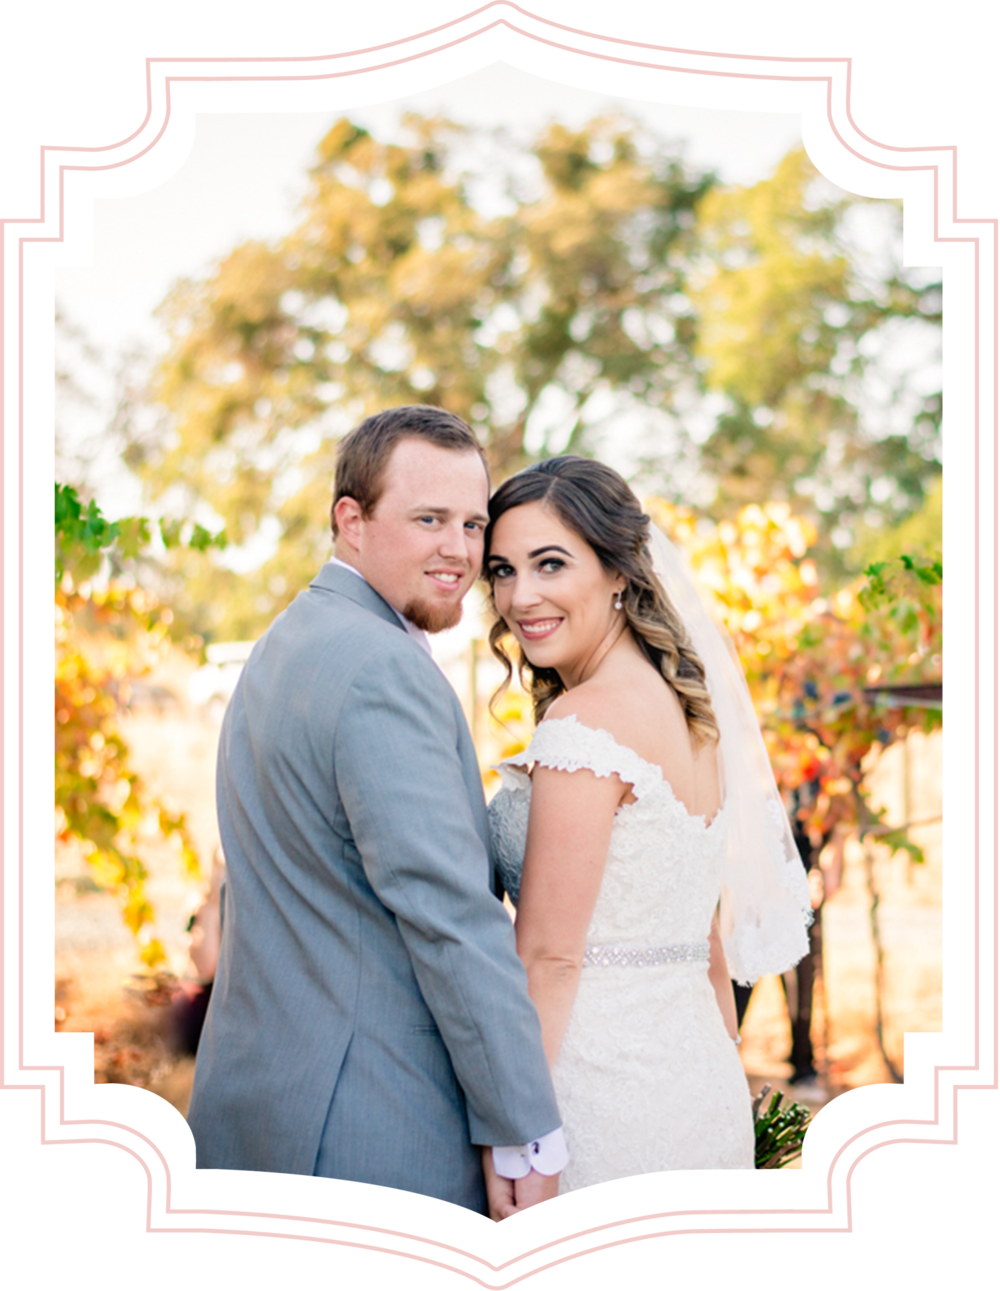 Taylor Kevin Sacramento wedding photographer review.png